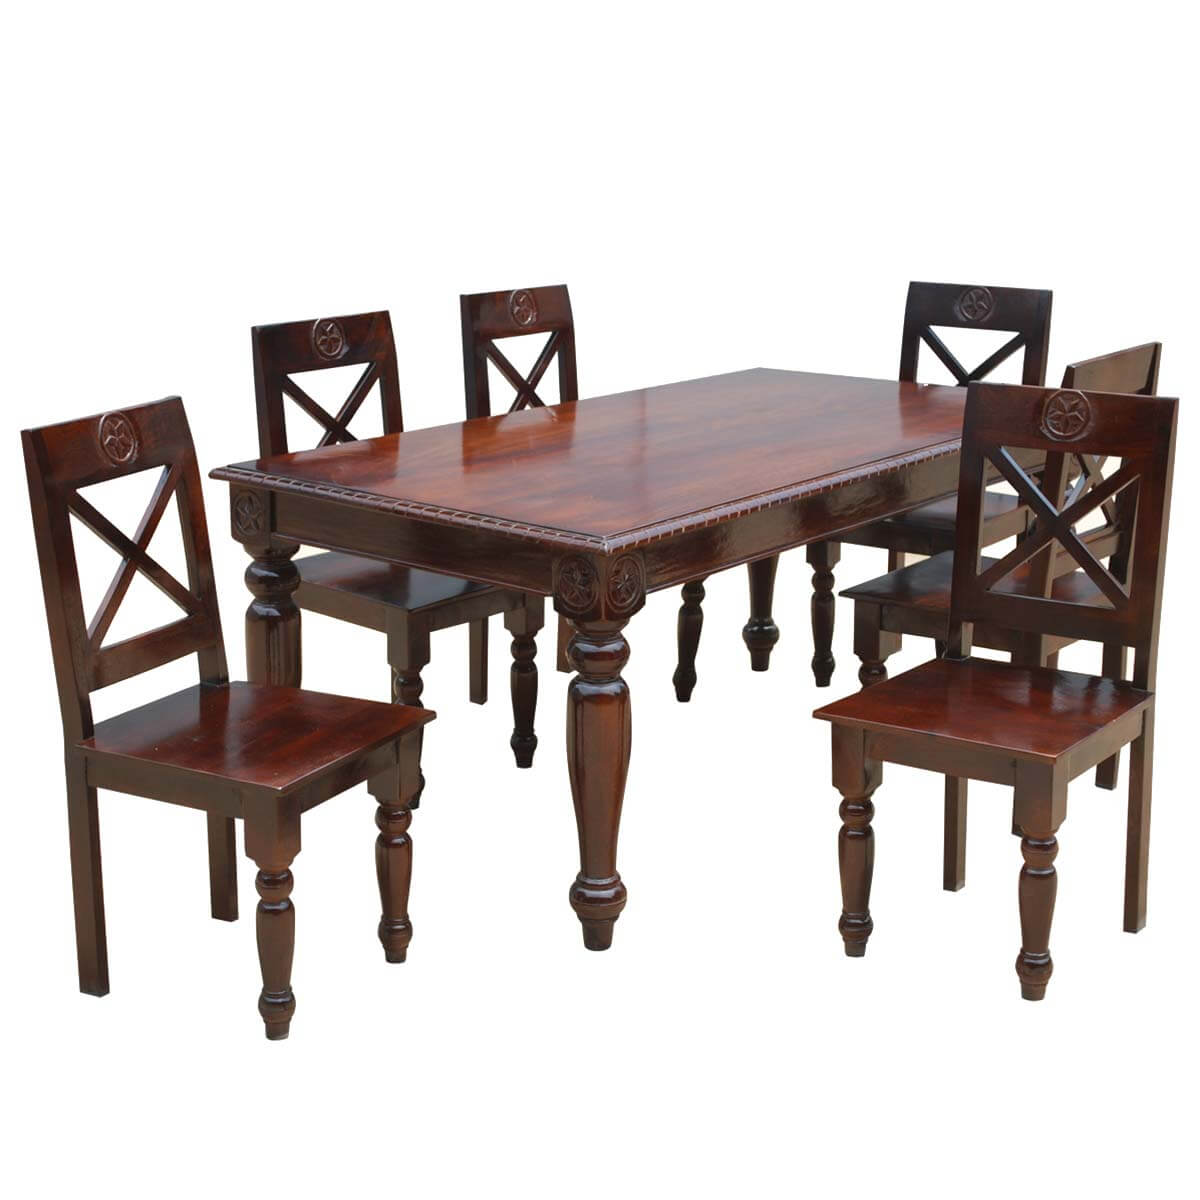 Dining Table And Chairs ~ Texas rustic dining table and chairs set